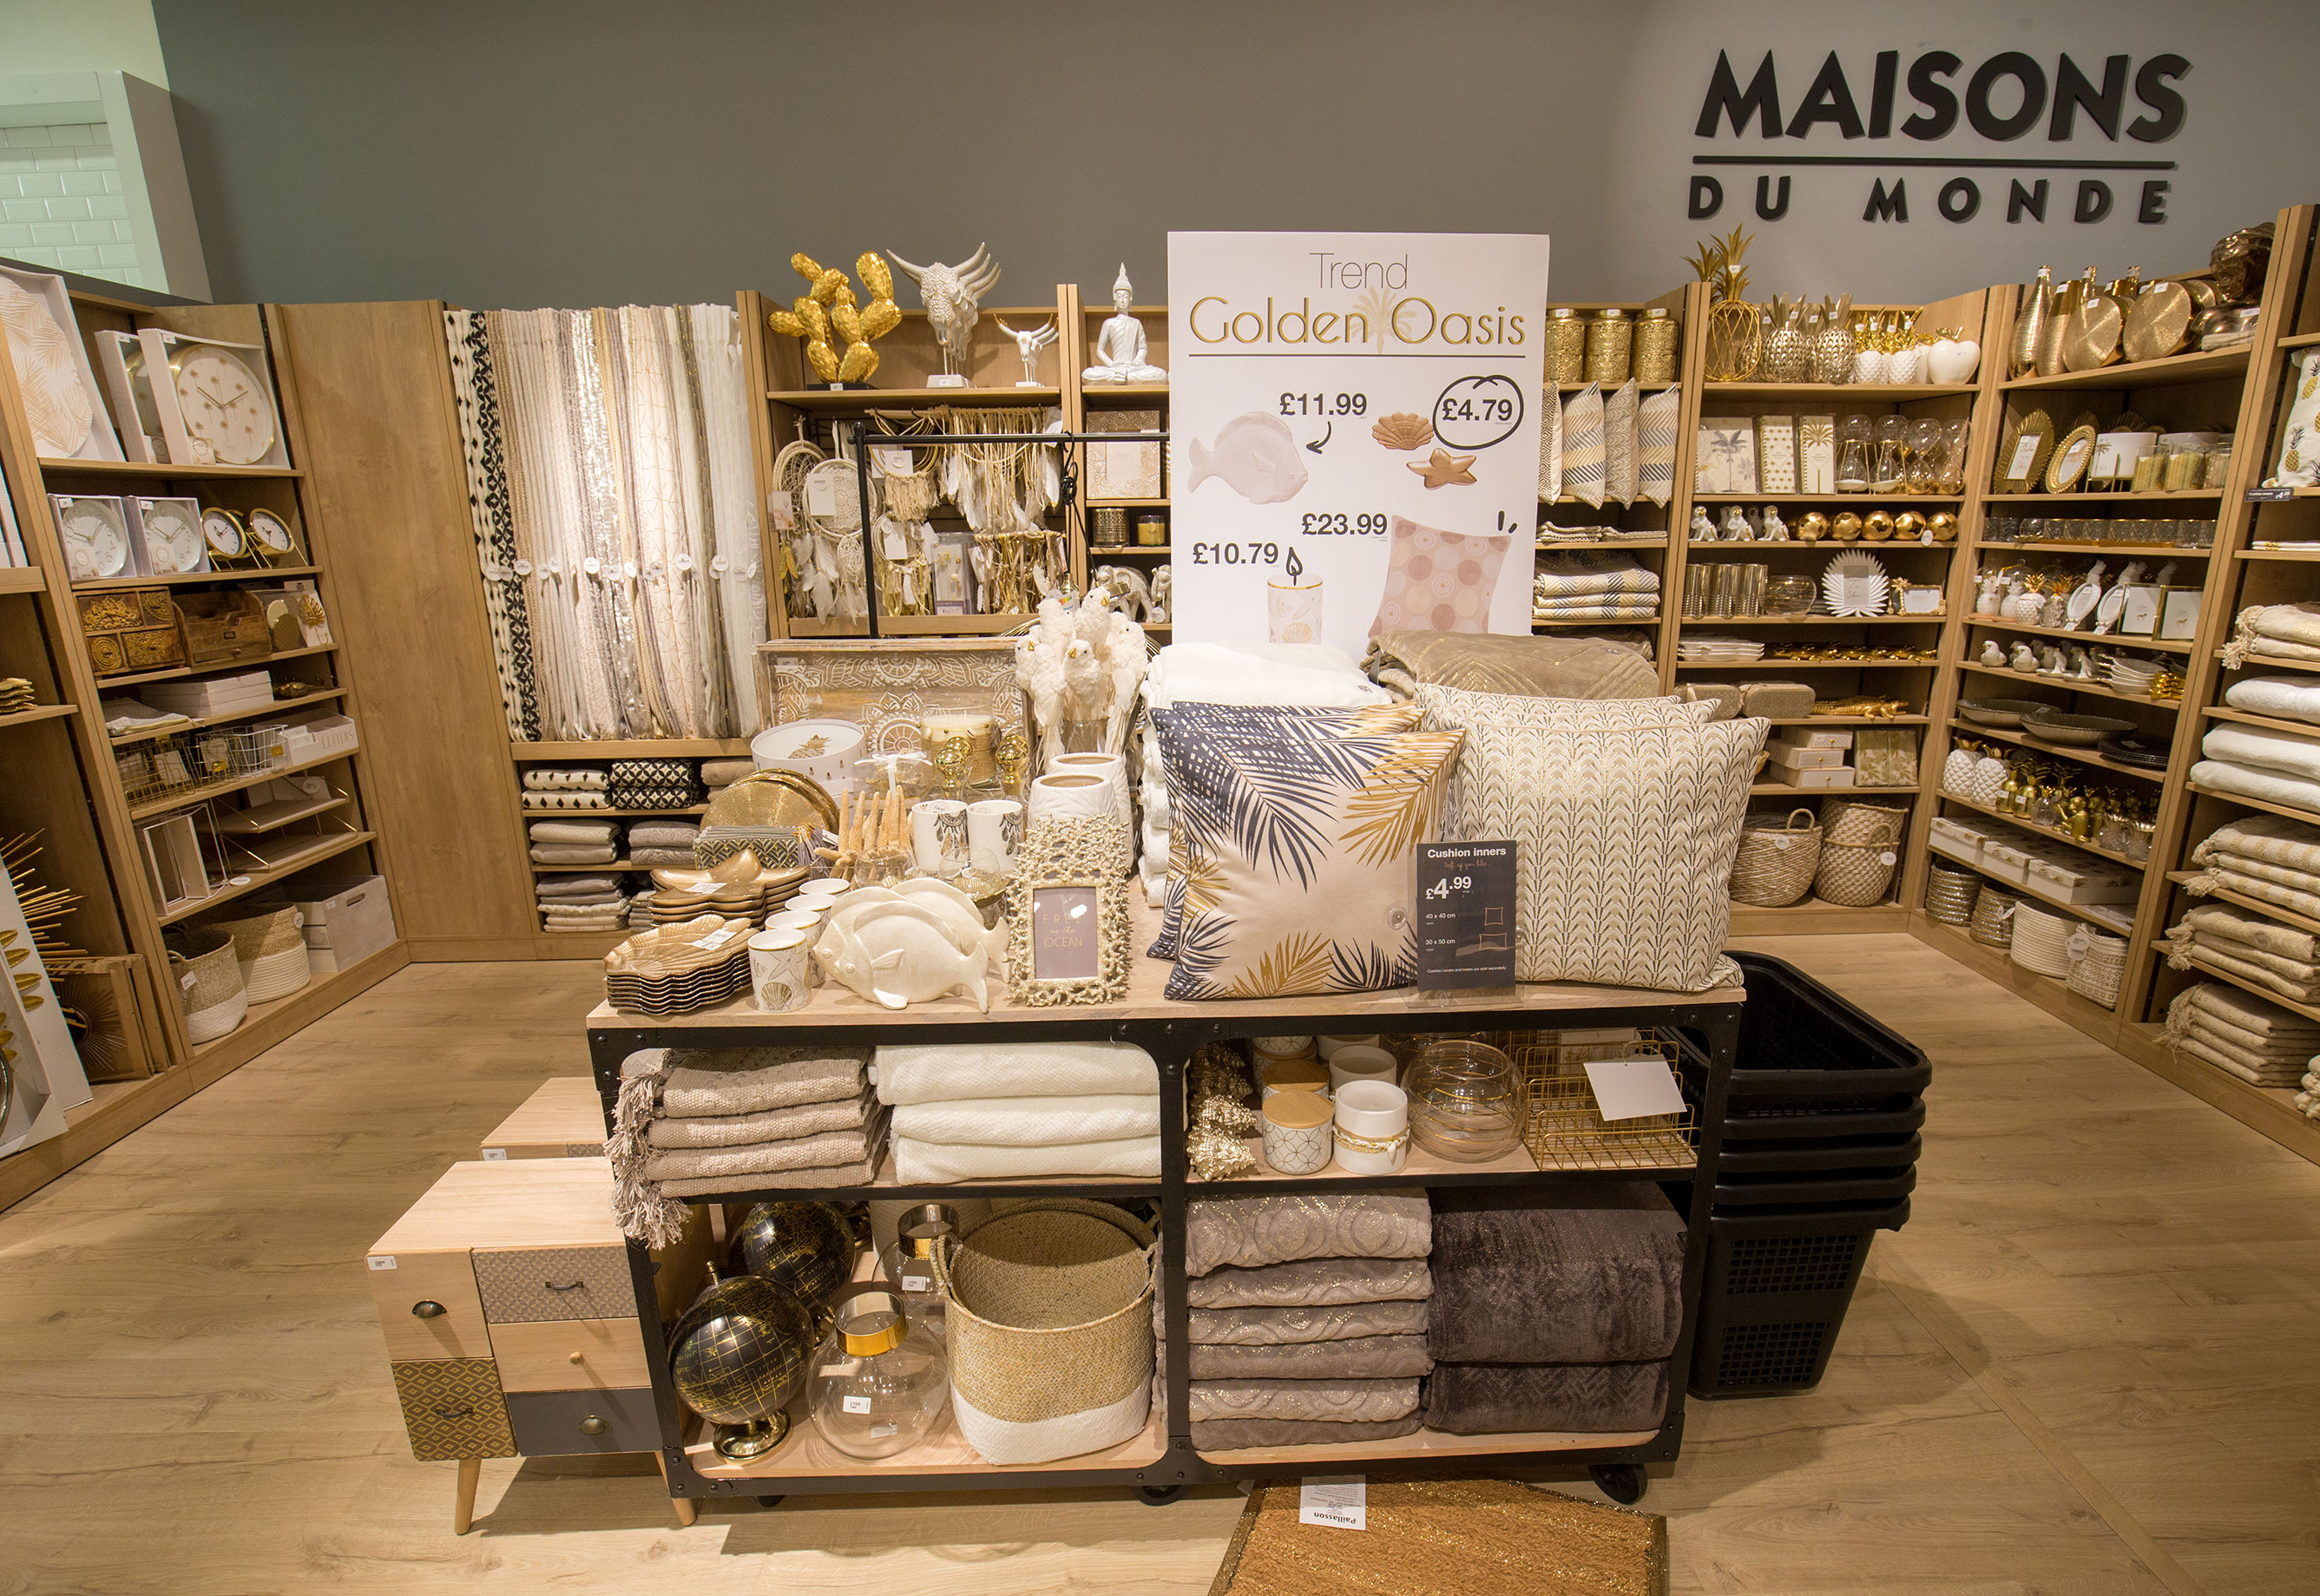 Maisons du monde opened 3 concessions in london westfield for Maison du monde